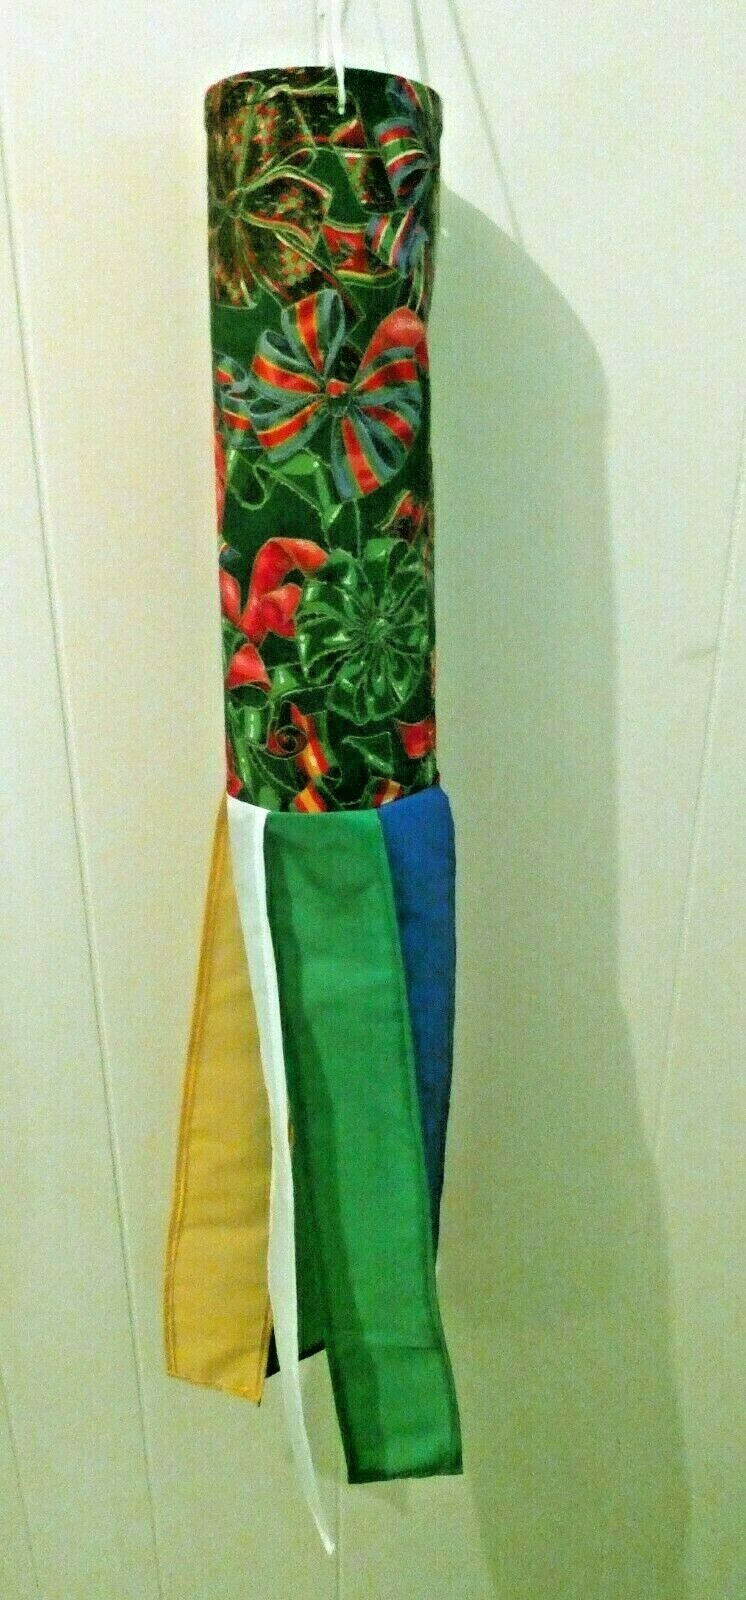 Windsock - Handmade - Christmas - Different Colored Christmas Bows